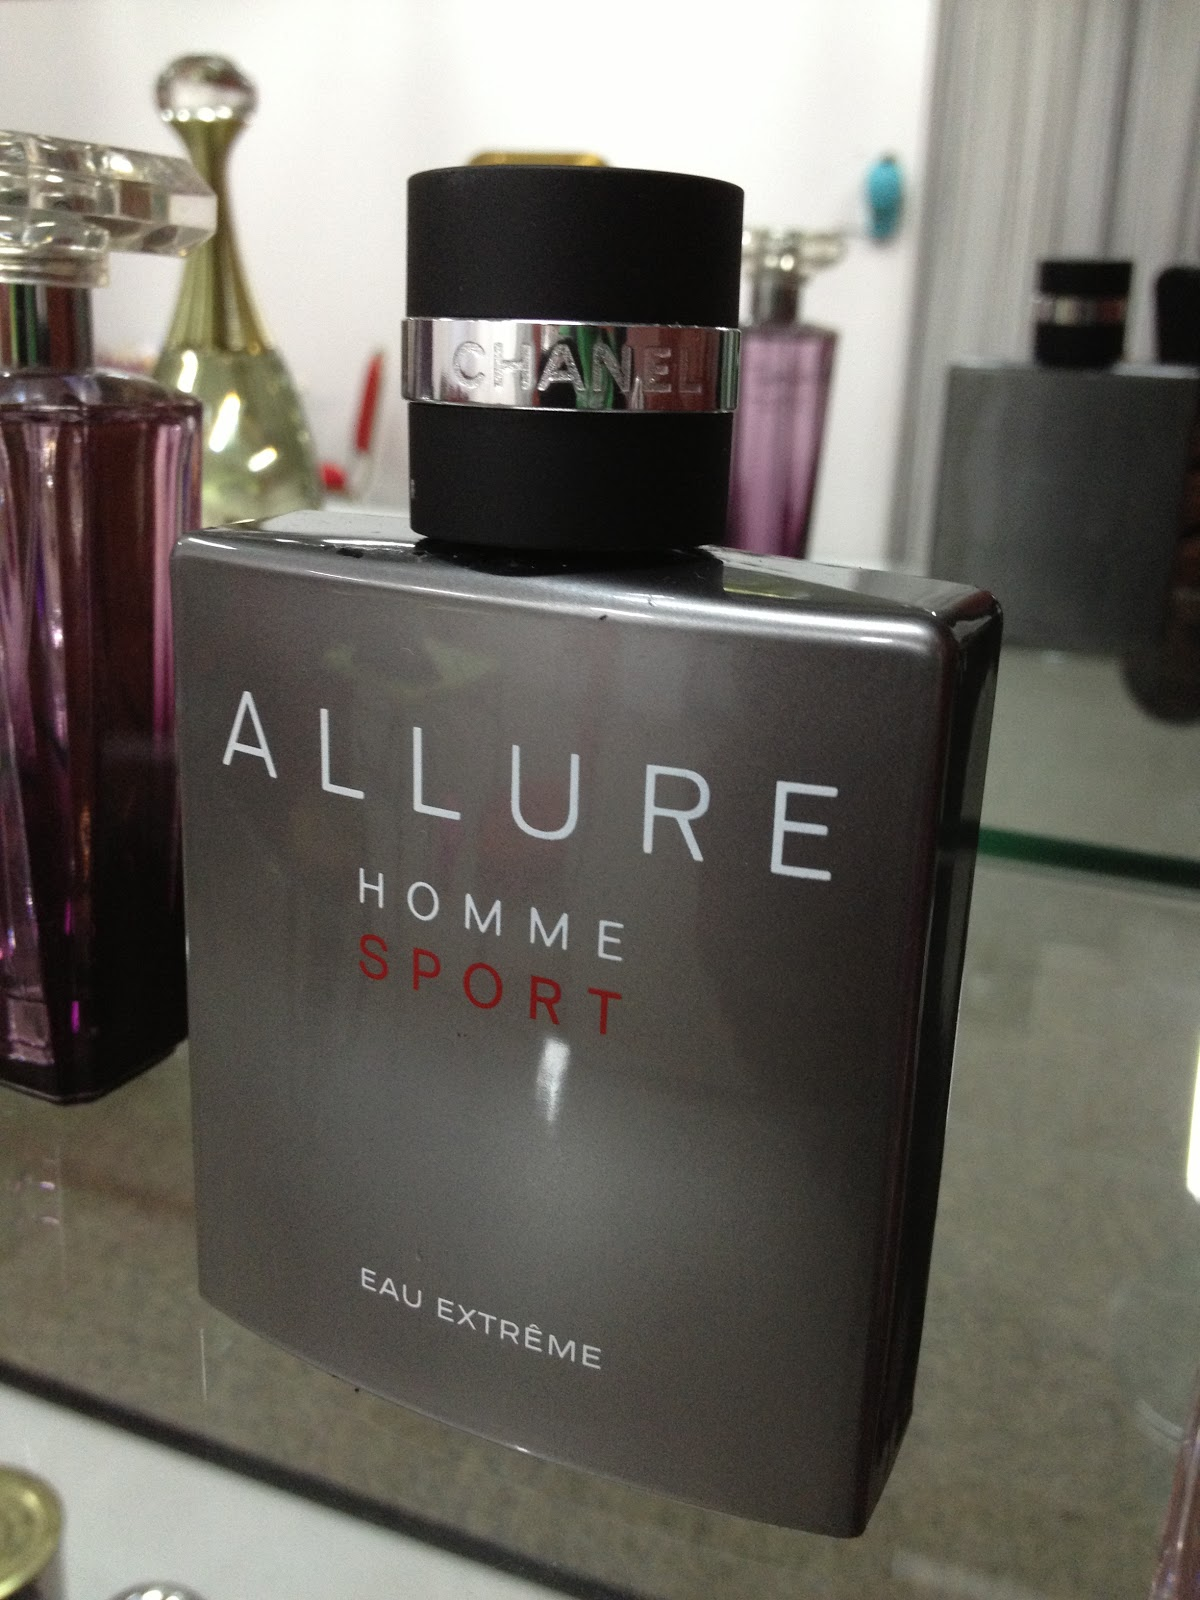 chanel allure homme sport eau extreme. strictly for perfume lover: allure homme sport eau extreme men edisi 2012, 100ml rm150. chanel p